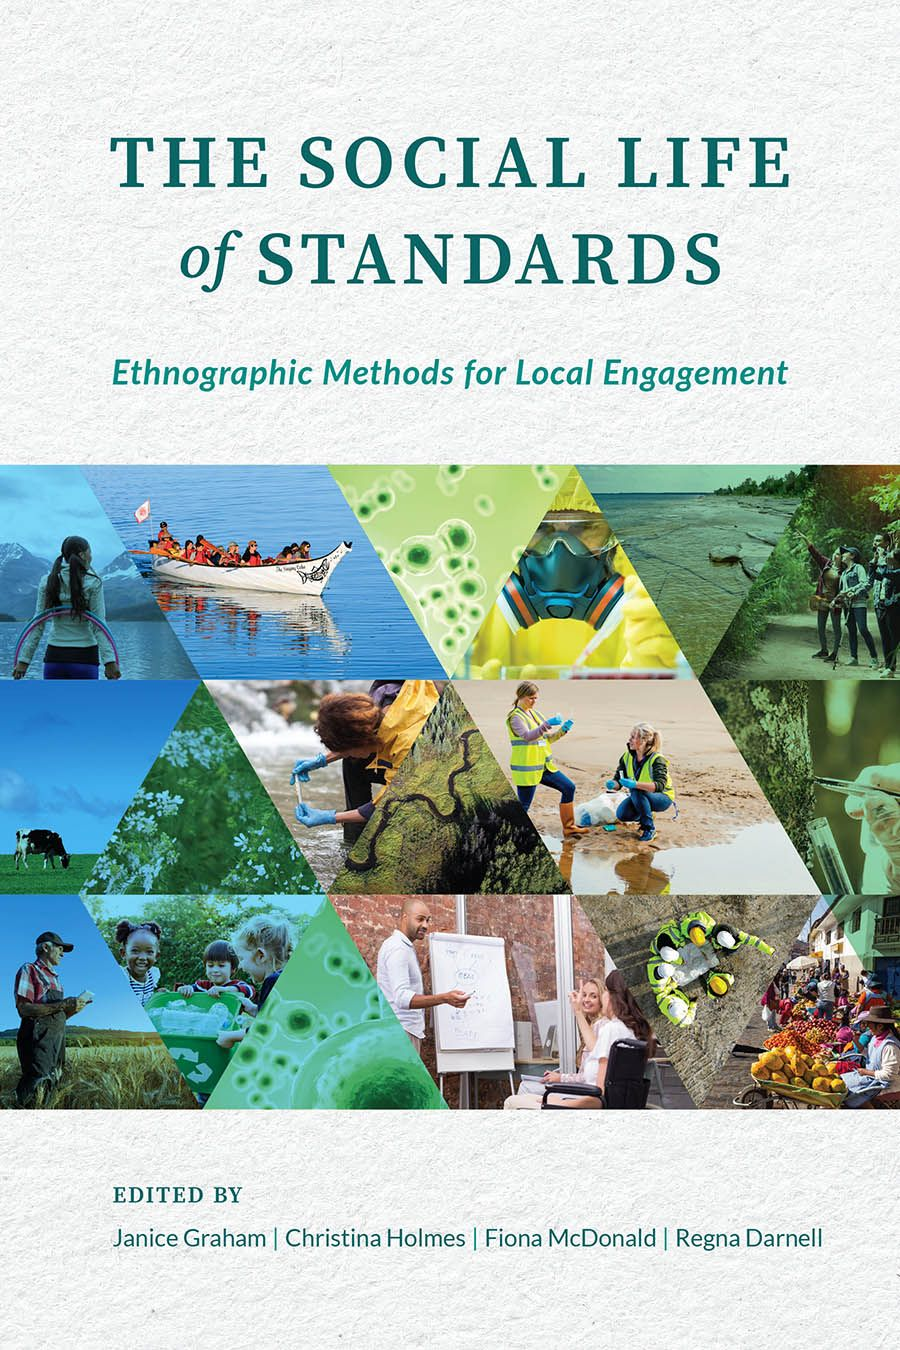 The Social Life of Standards: Ethnographic Methods for Local Engagement